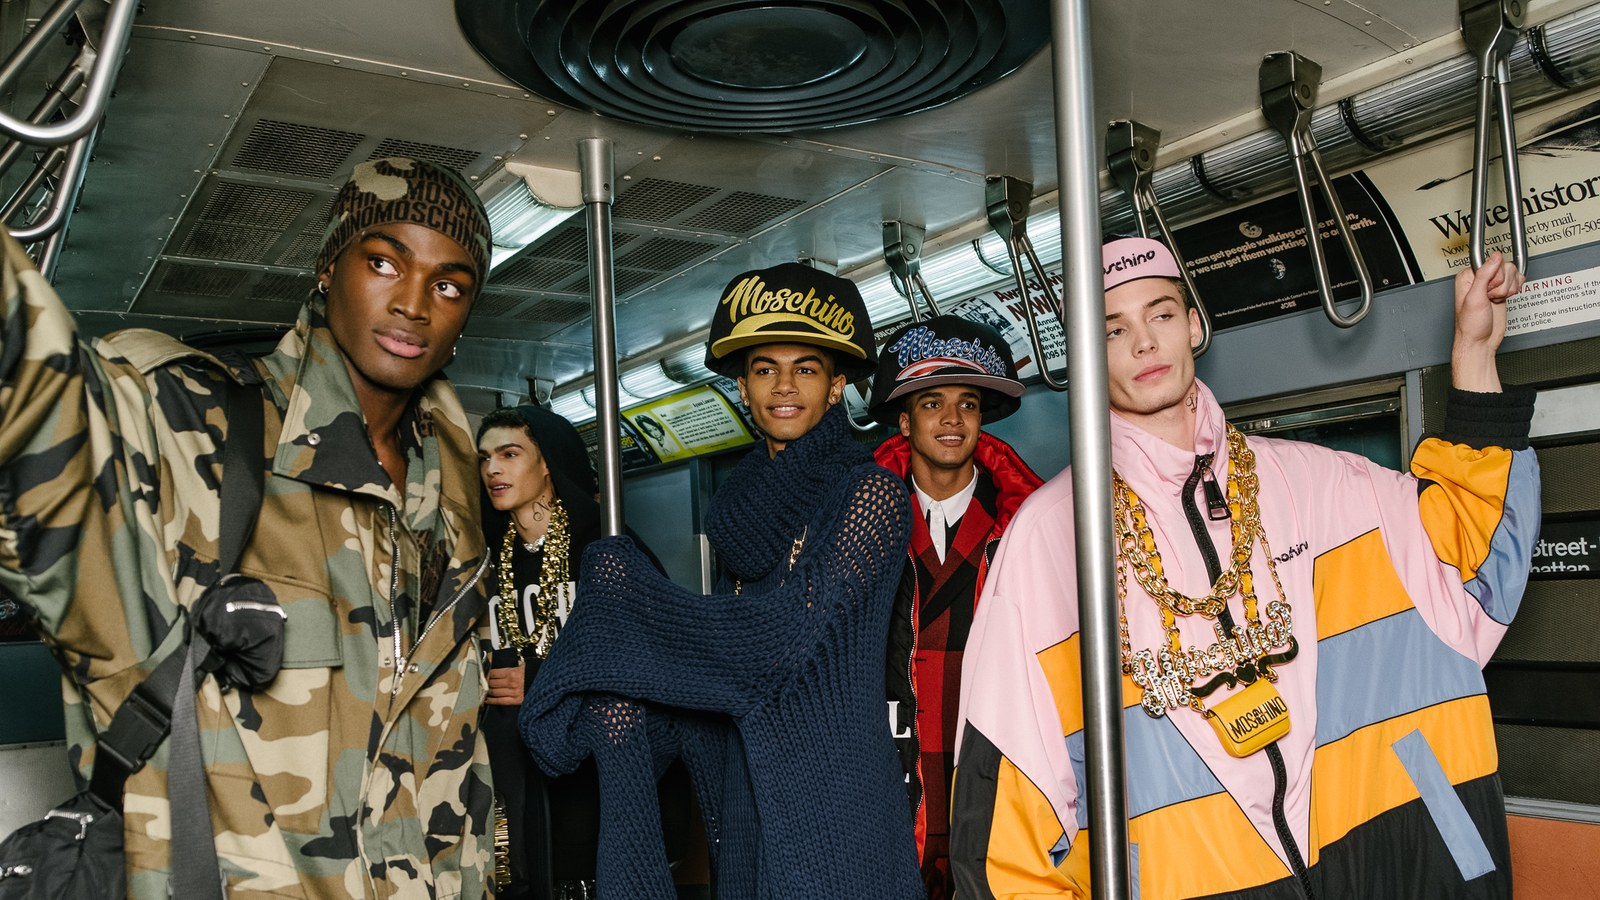 Moschino takes the NYC Subway (Pre-Fall 2020) show